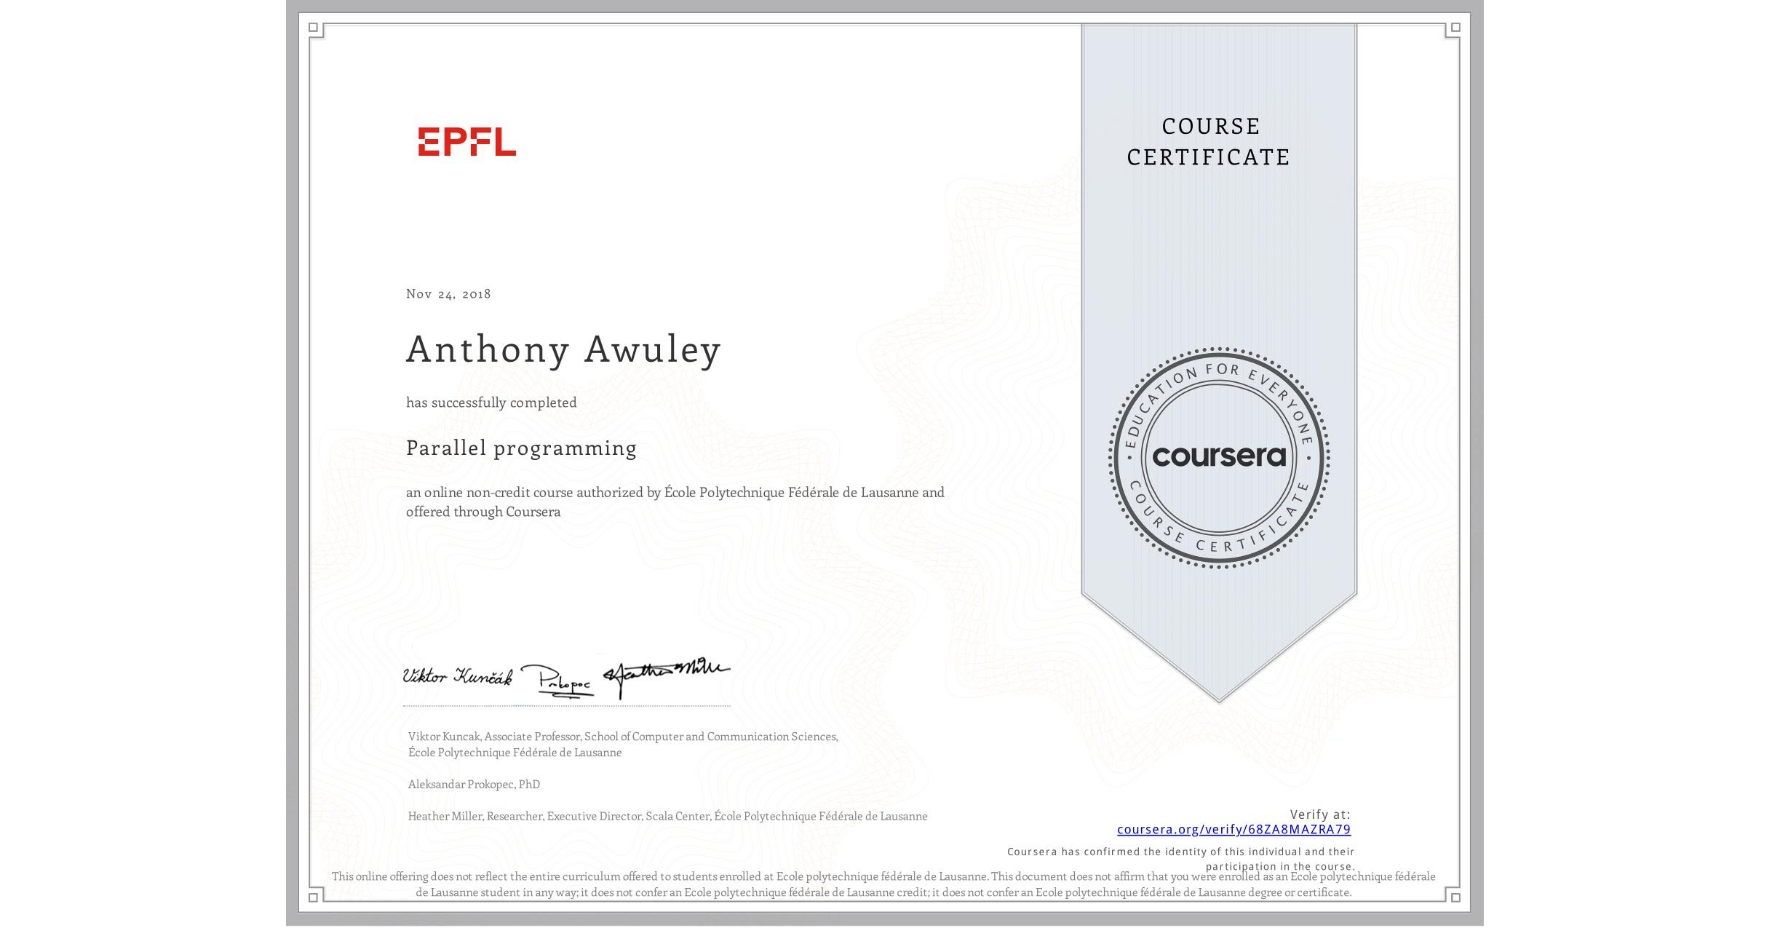 View certificate for Anthony Awuley, Parallel programming, an online non-credit course authorized by École Polytechnique Fédérale de Lausanne and offered through Coursera